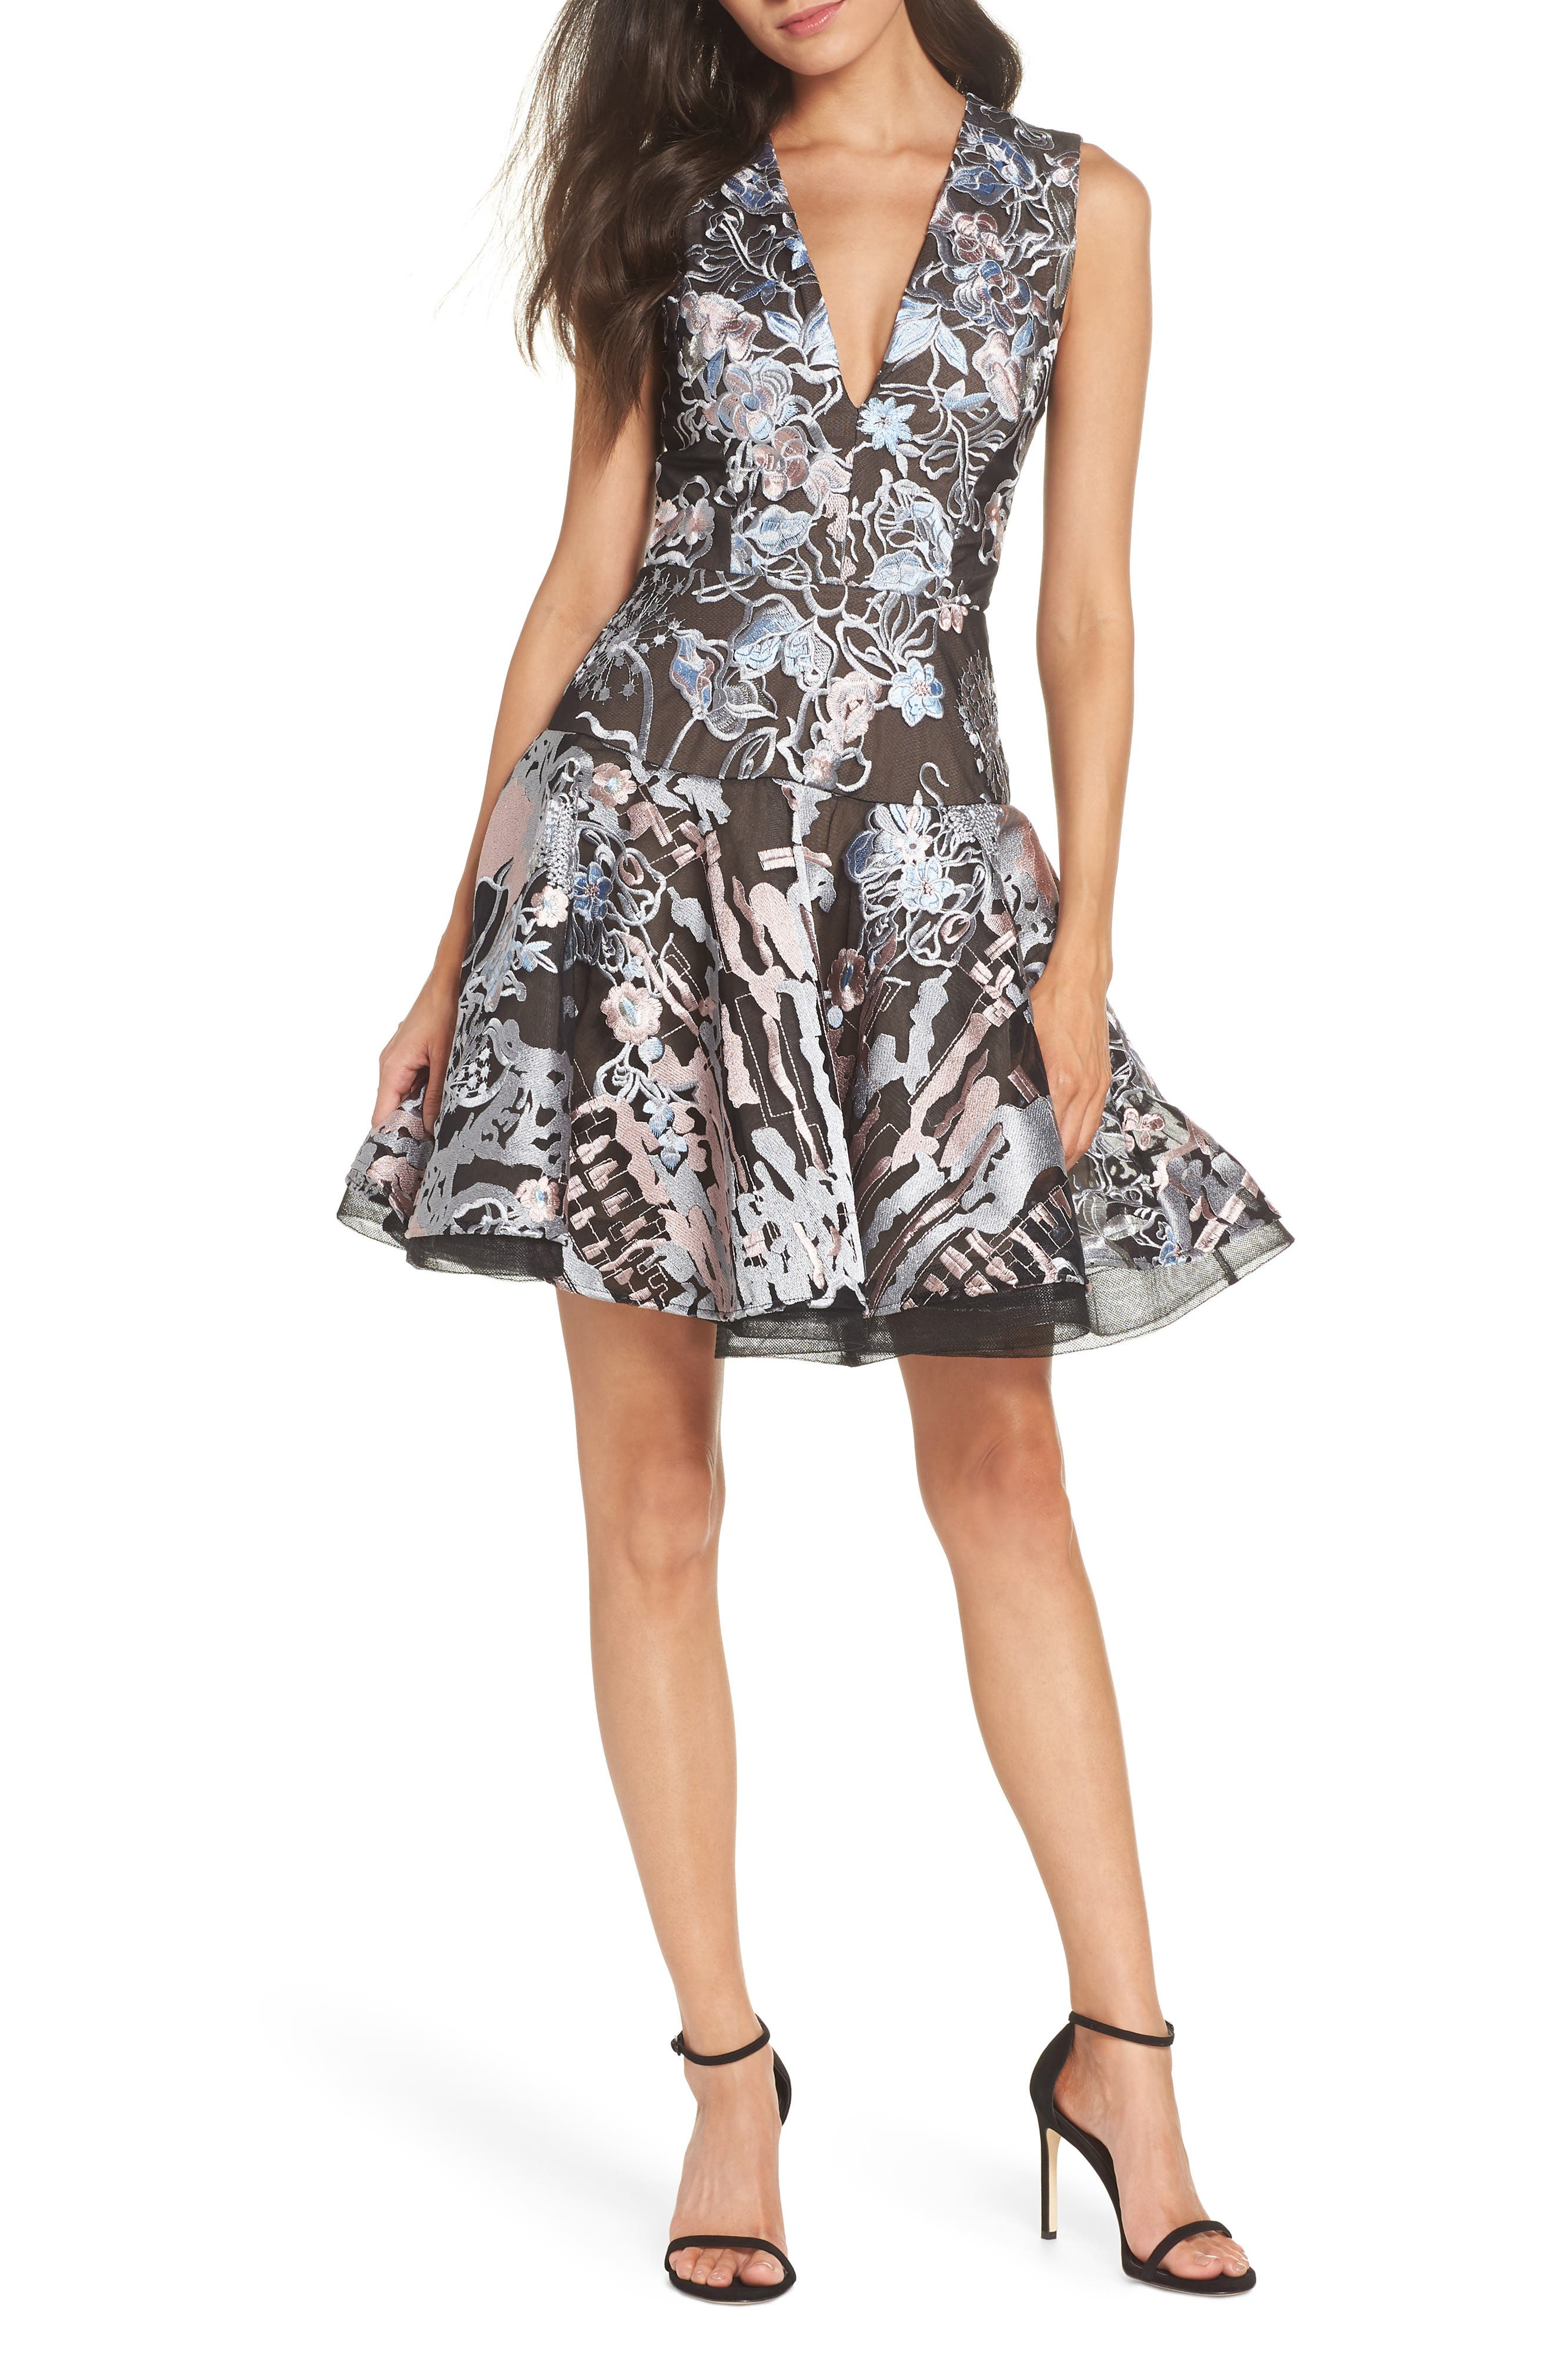 BRONX AND BANCO Bronx & Banco Tokyo Embroidered Fit And Flare Mini Dress in Multi Color